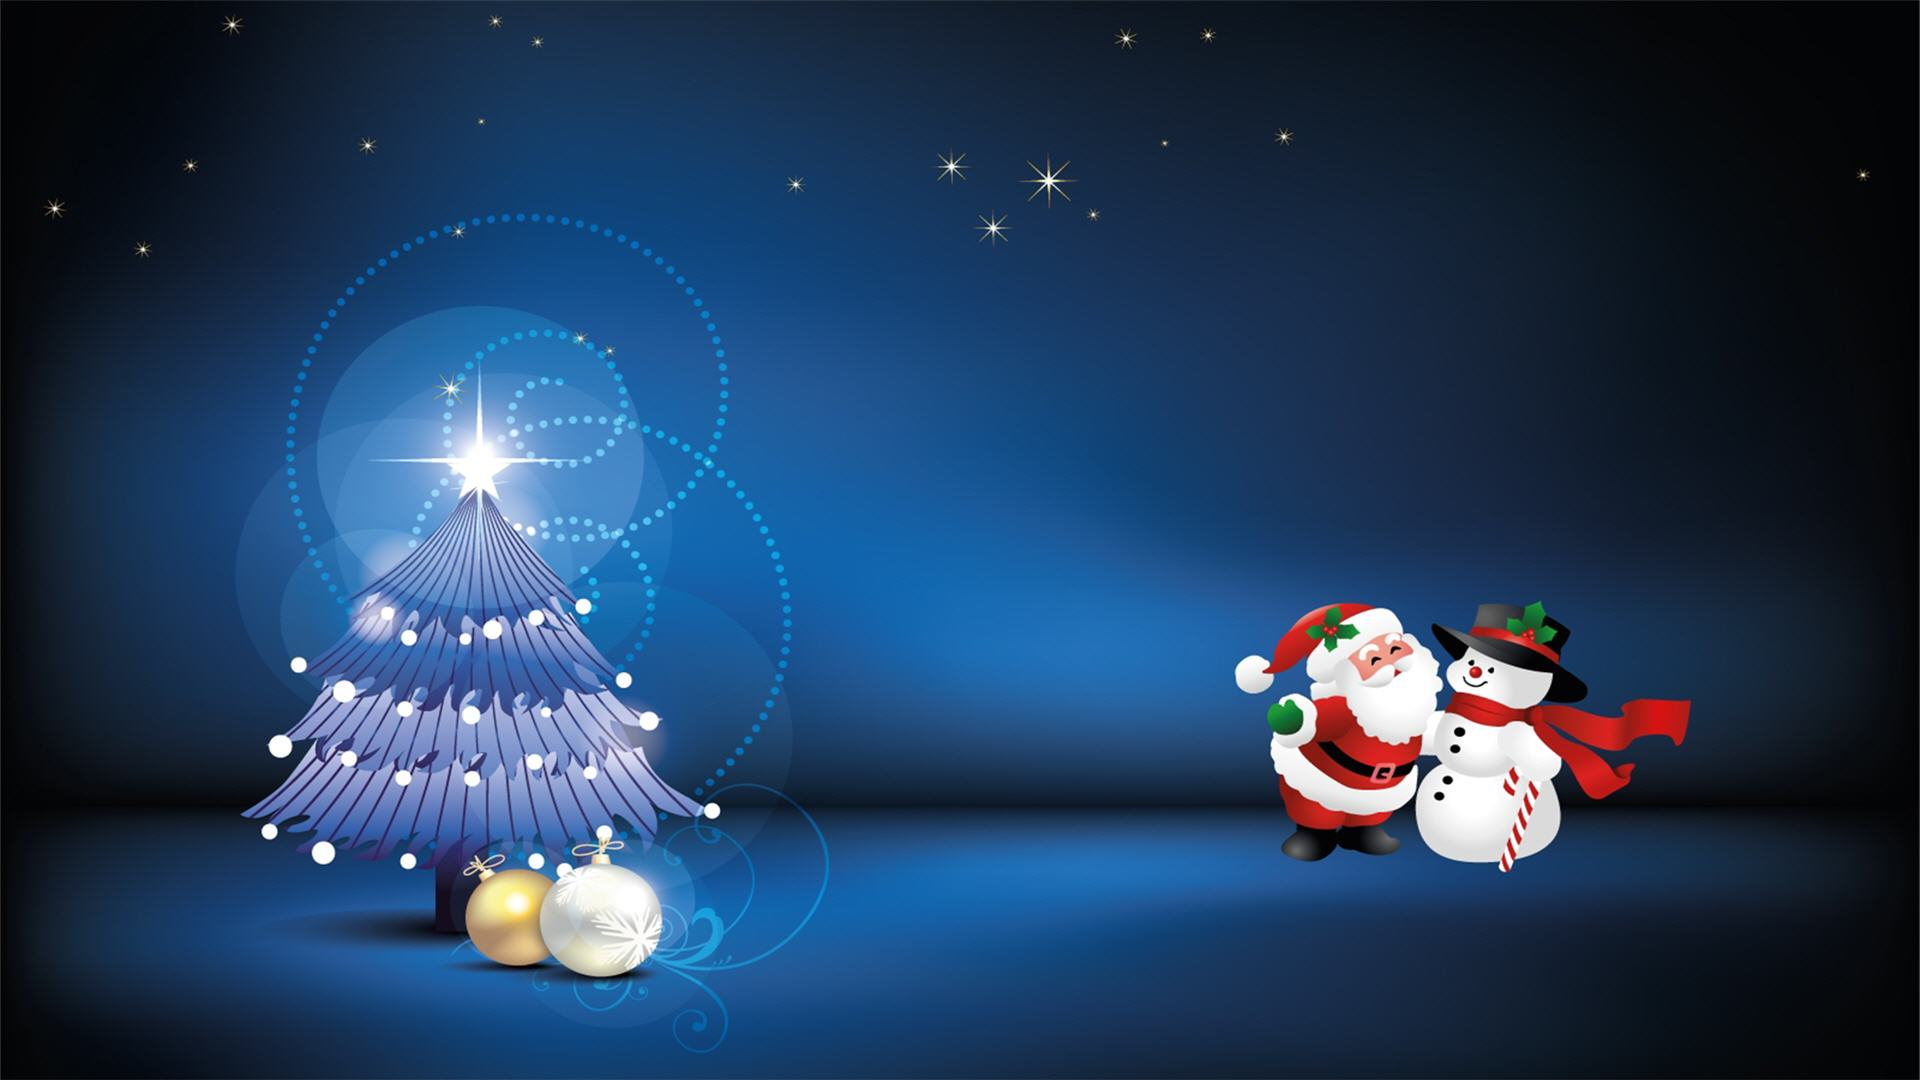 Free hd christmas wallpapers desktop backgrounds 2016 - Free christmas images for desktop wallpaper ...